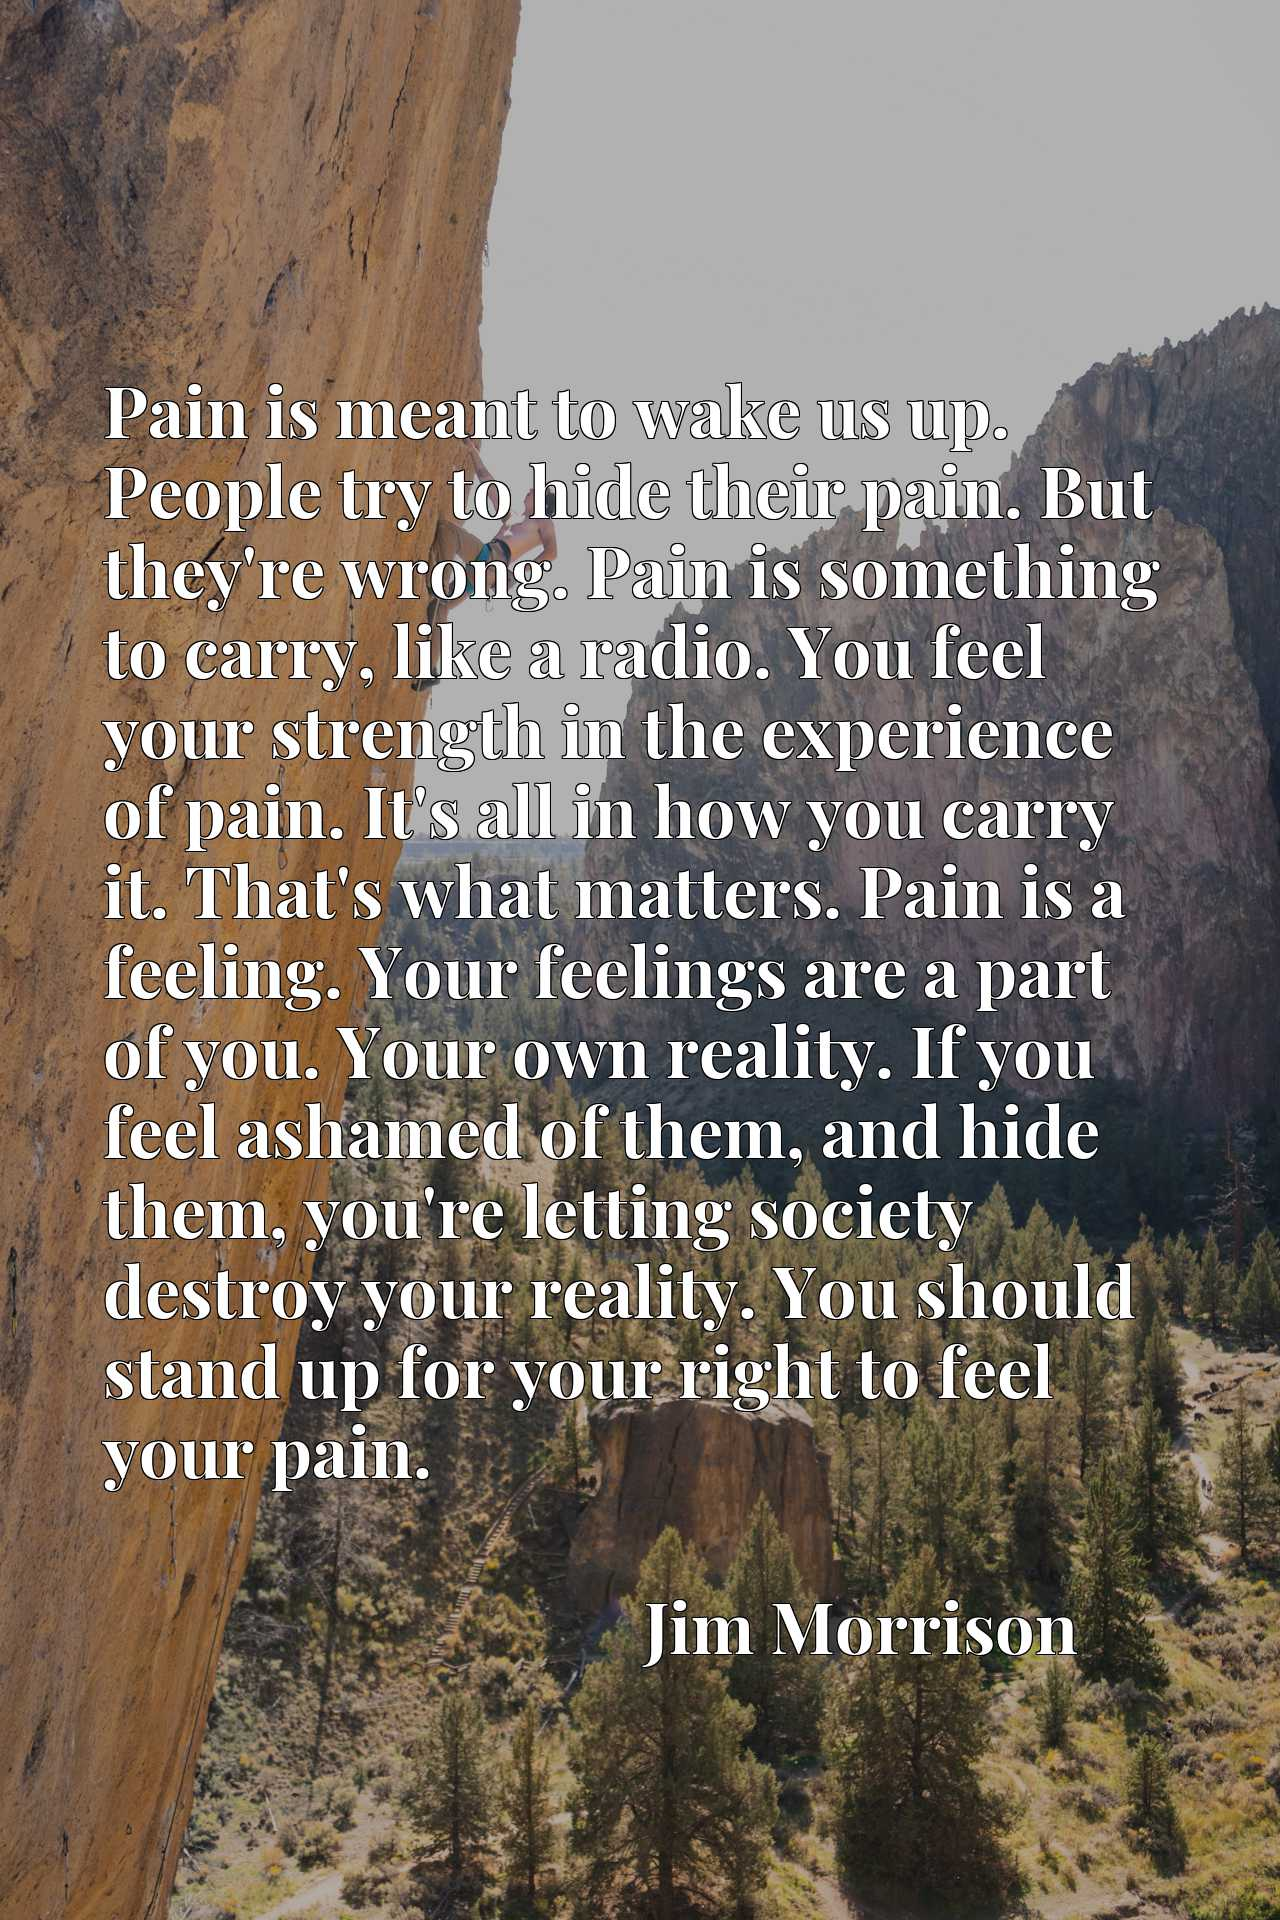 Pain is meant to wake us up. People try to hide their pain. But they're wrong. Pain is something to carry, like a radio. You feel your strength in the experience of pain. It's all in how you carry it. That's what matters. Pain is a feeling. Your feelings are a part of you. Your own reality. If you feel ashamed of them, and hide them, you're letting society destroy your reality. You should stand up for your right to feel your pain.